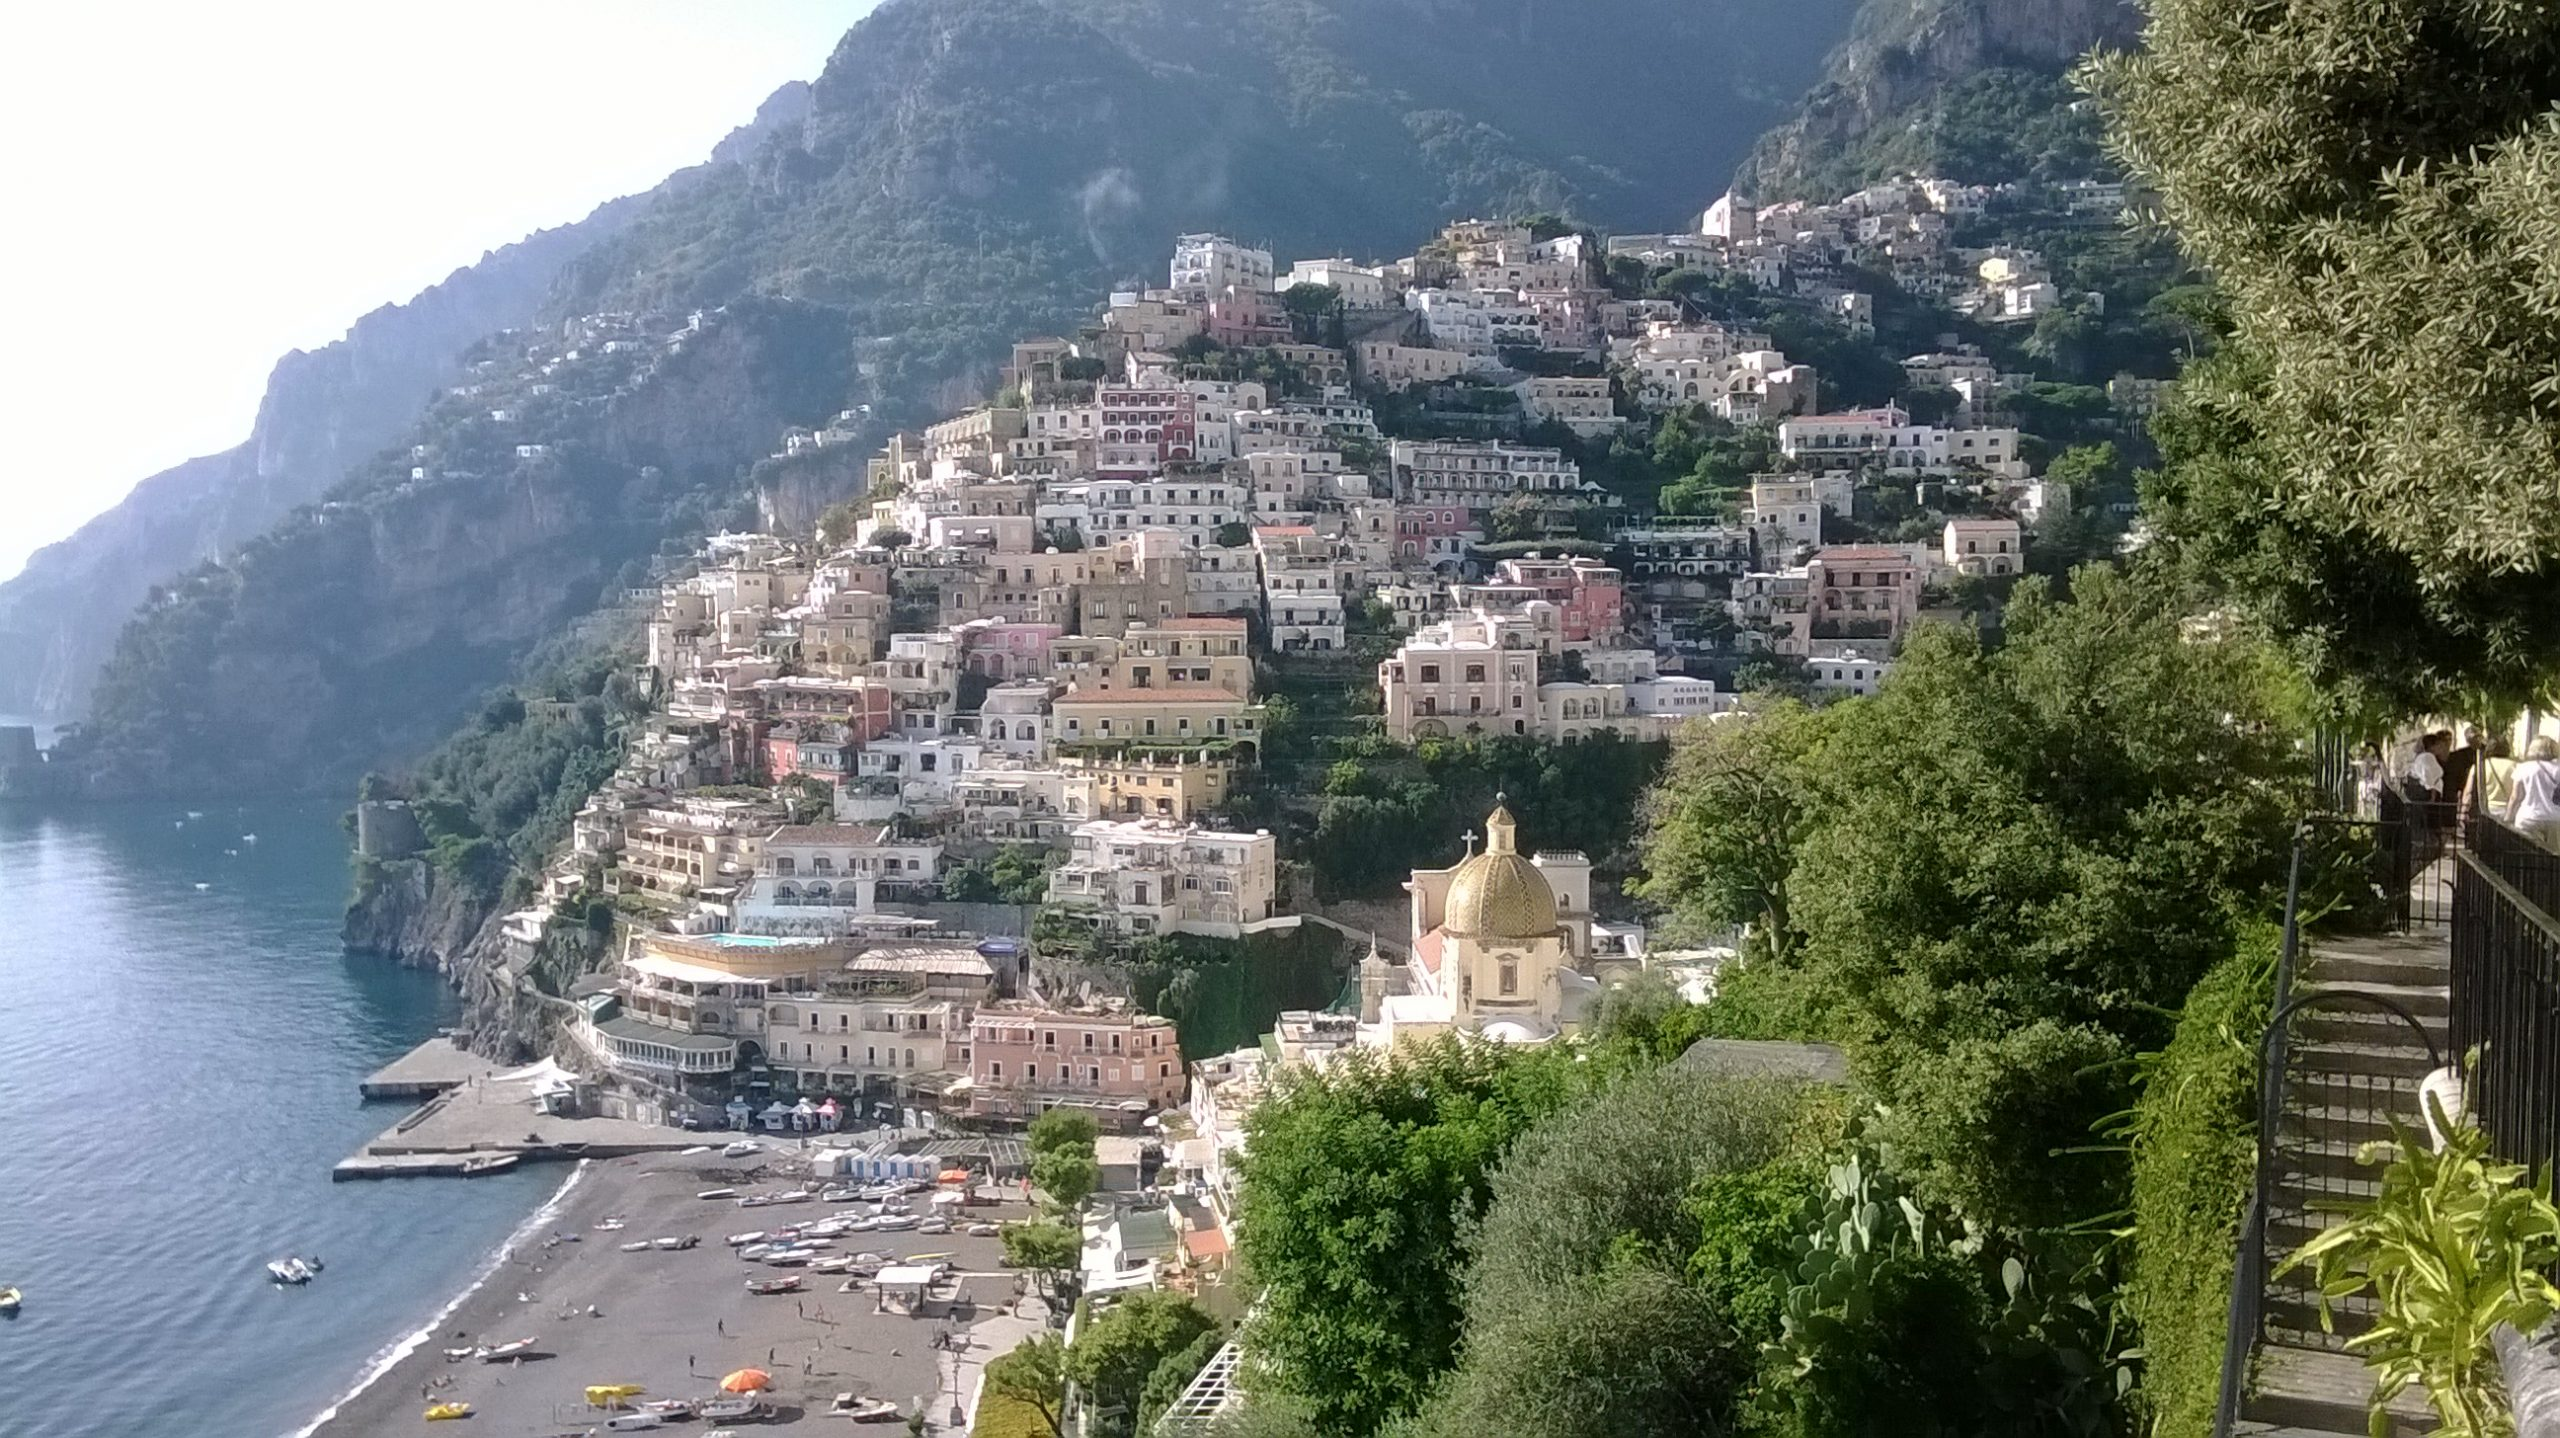 Sorrento, Positano and the Amalfi Coast, Italy